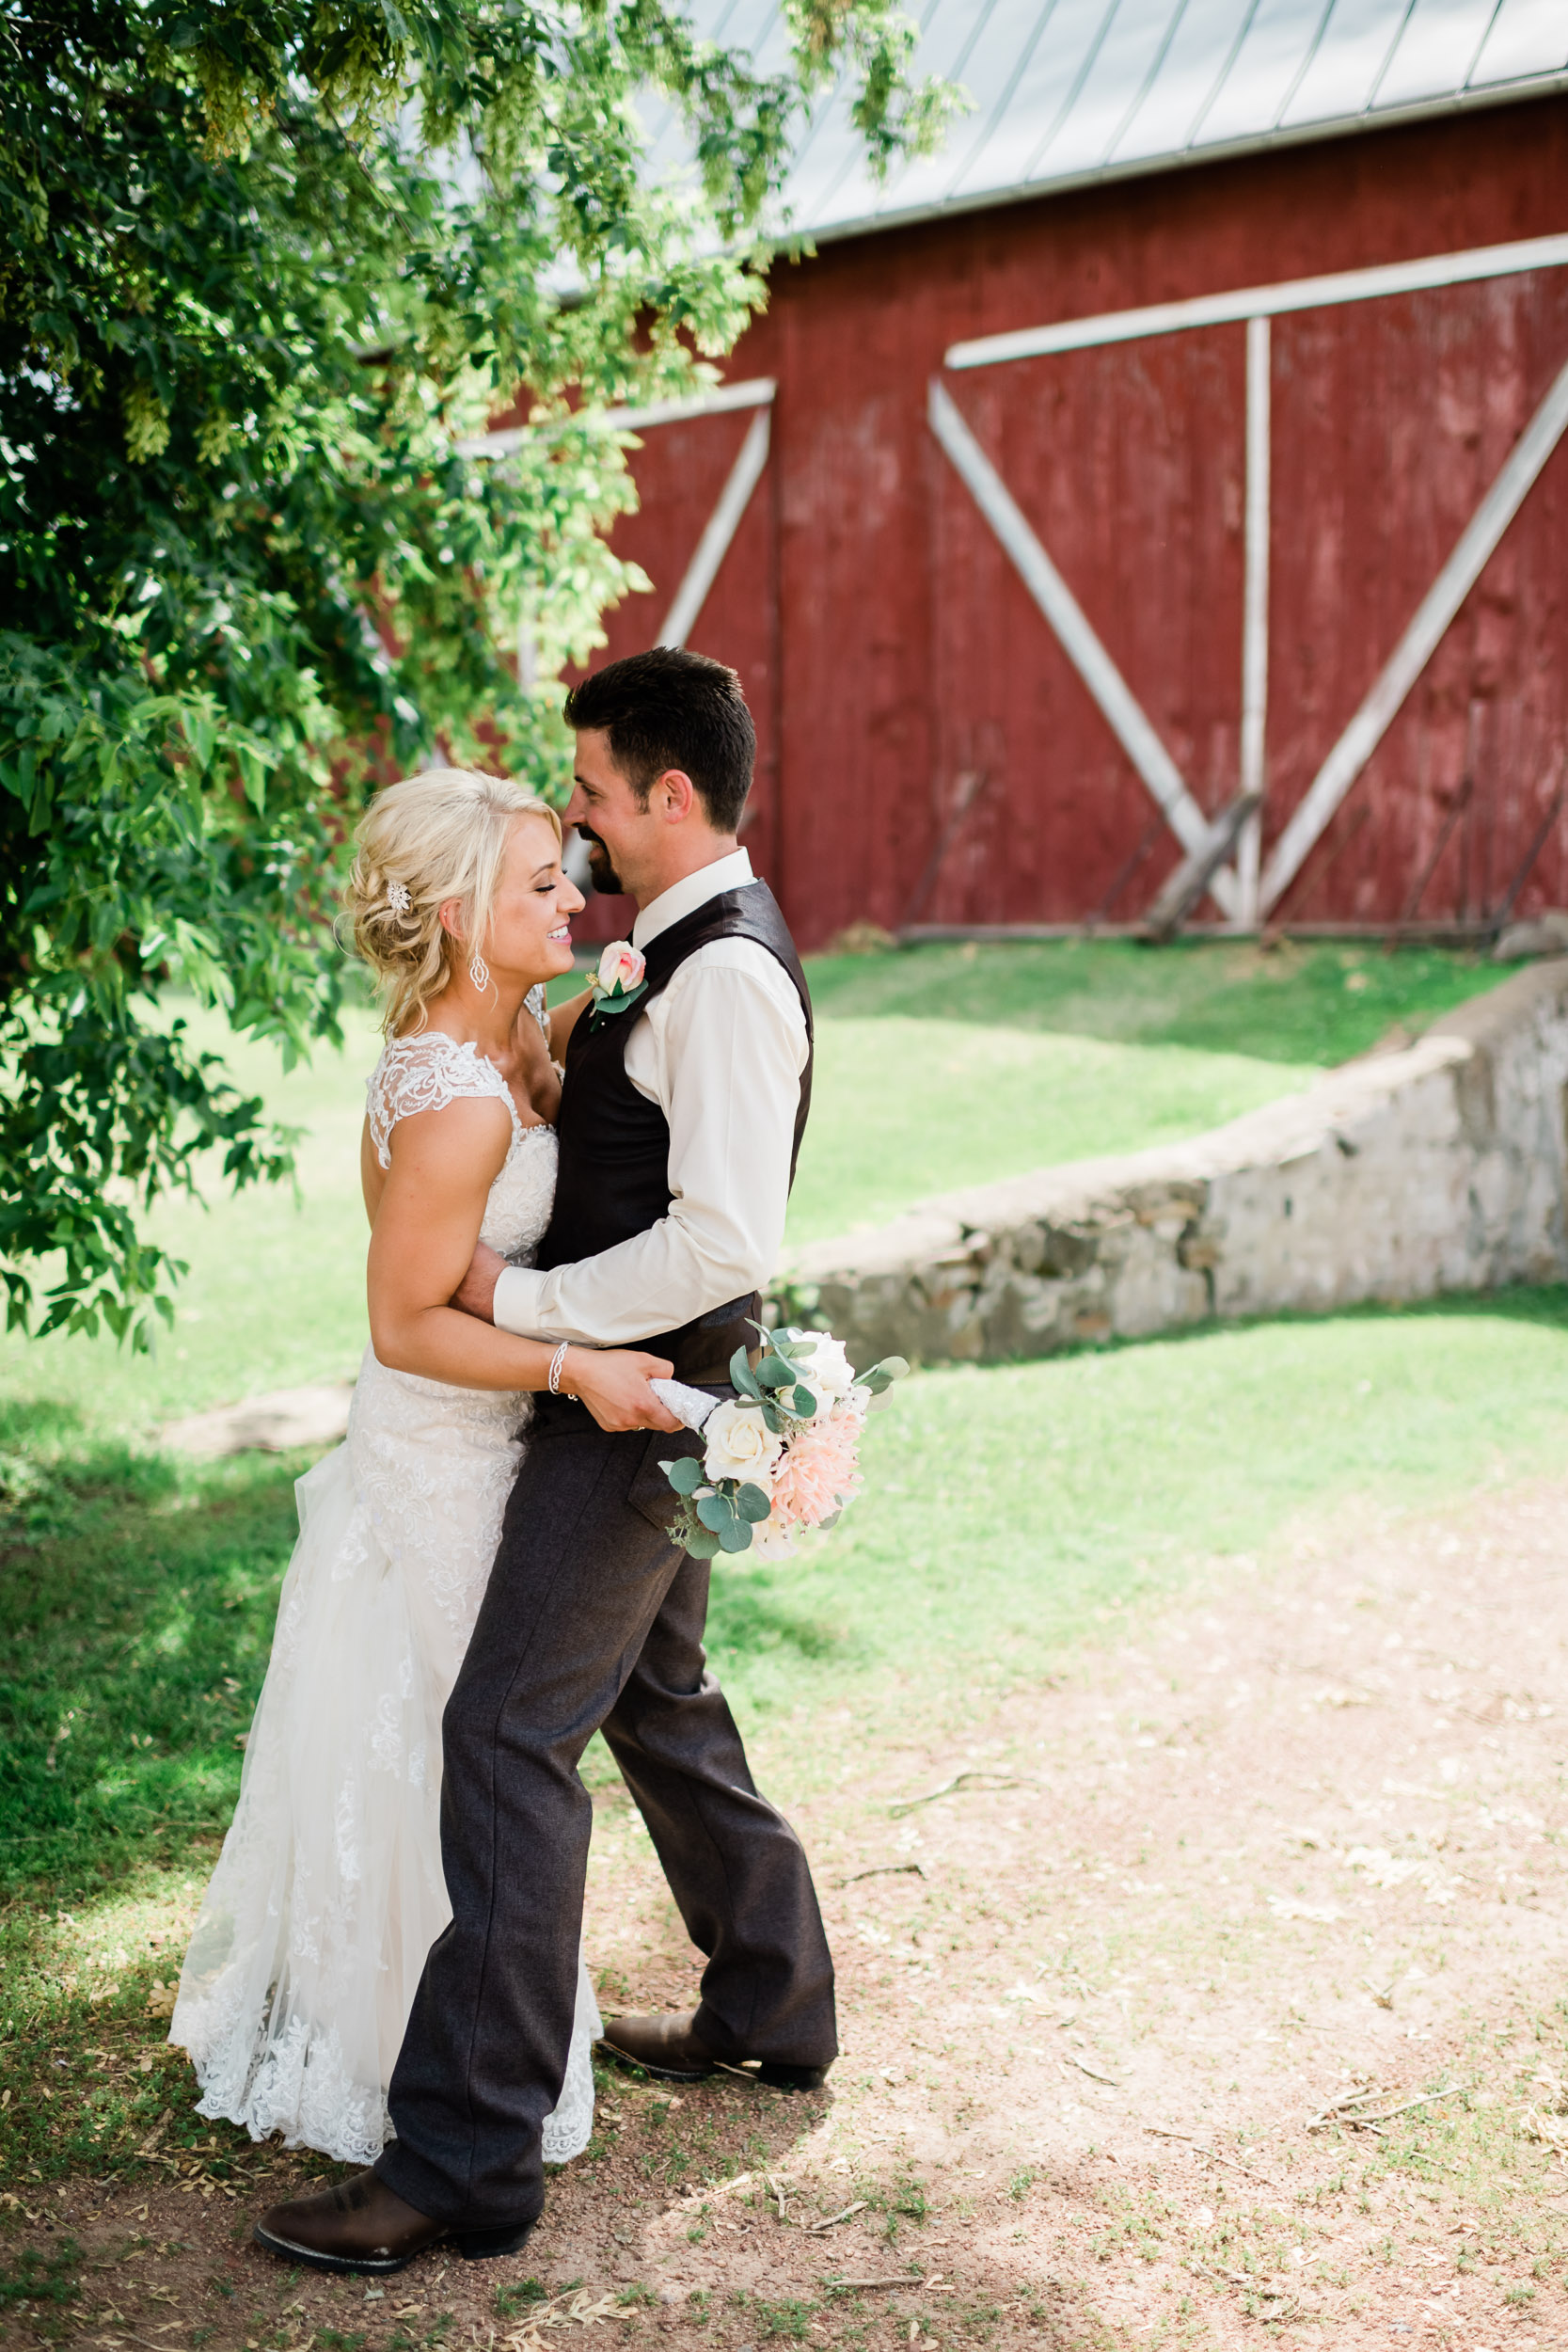 Bride and groom slow dancing in front of barn